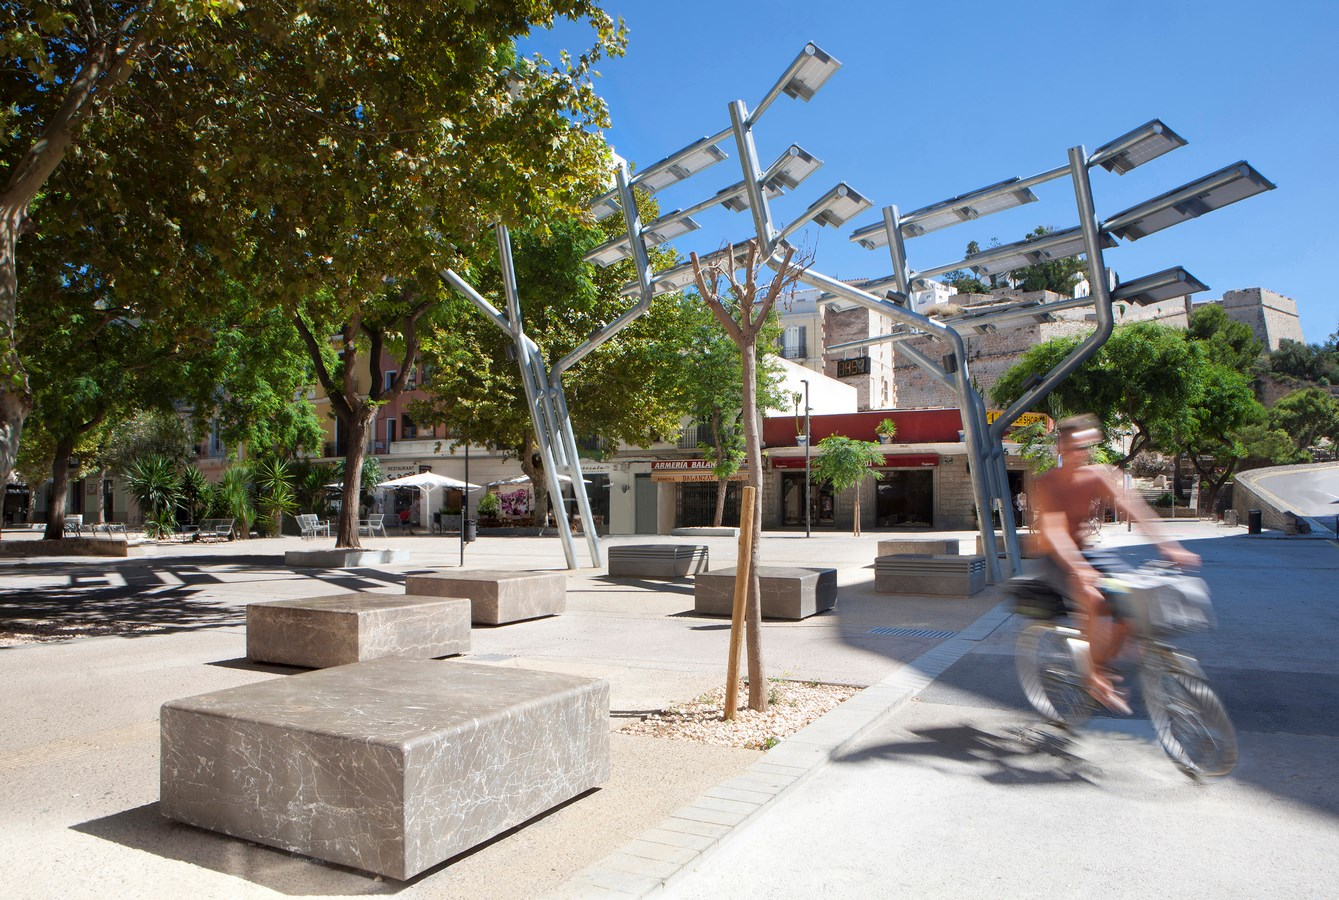 Vara De Rey Promenade And City Center Pedestrian Renovation  (6)